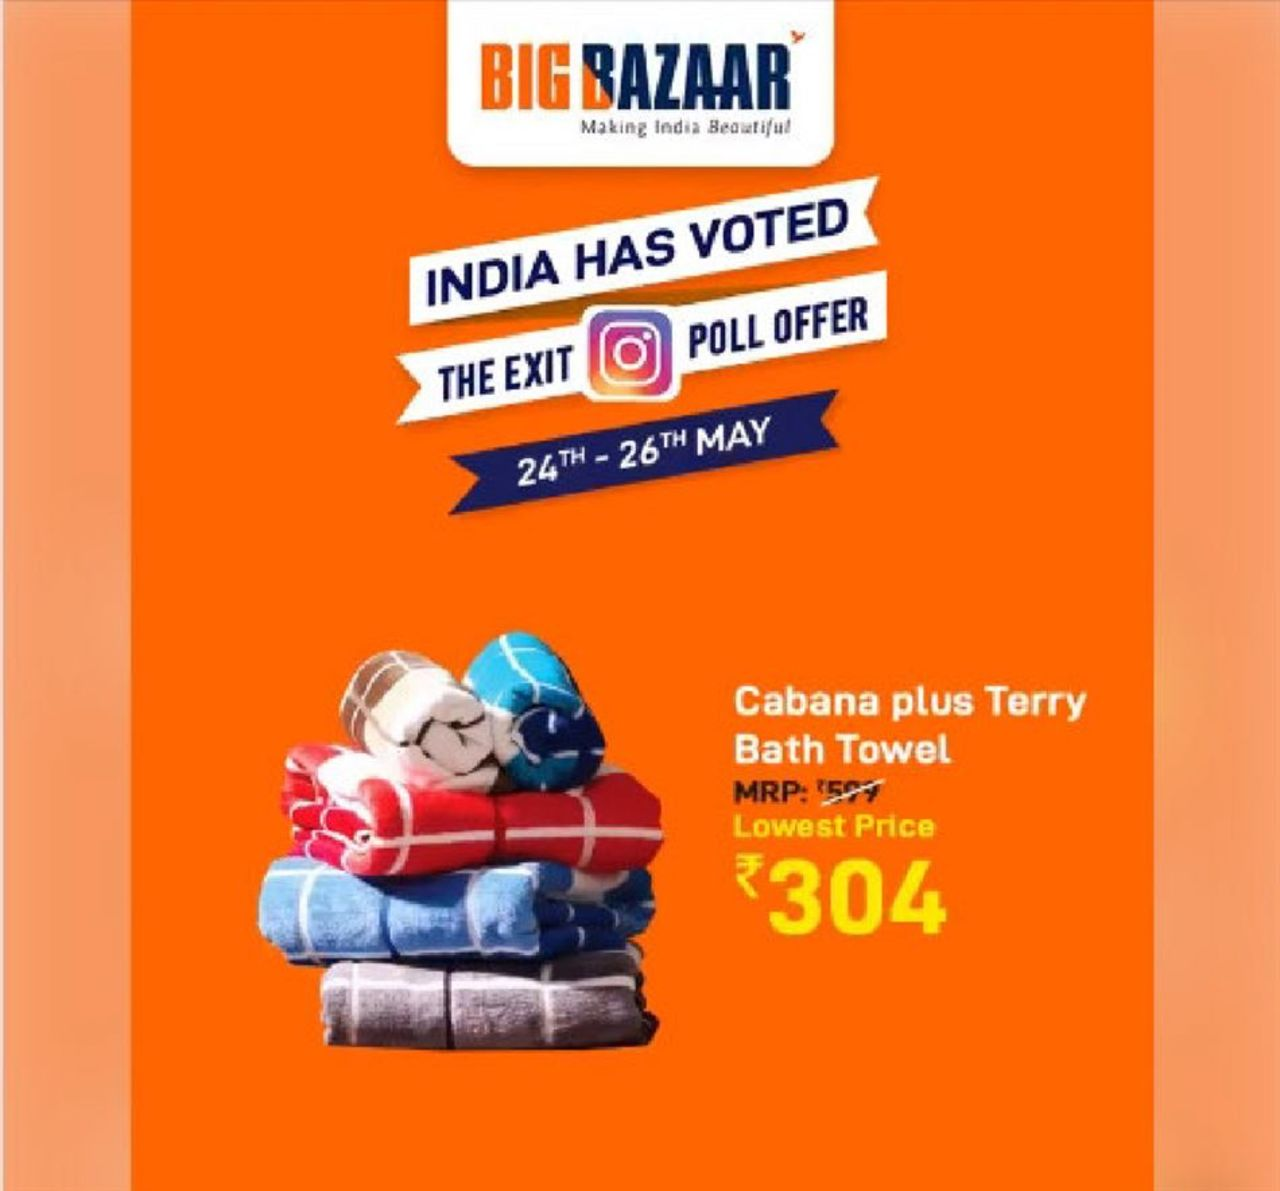 Big Bazaar catalogue valid from 23/05/2019 - page number 2